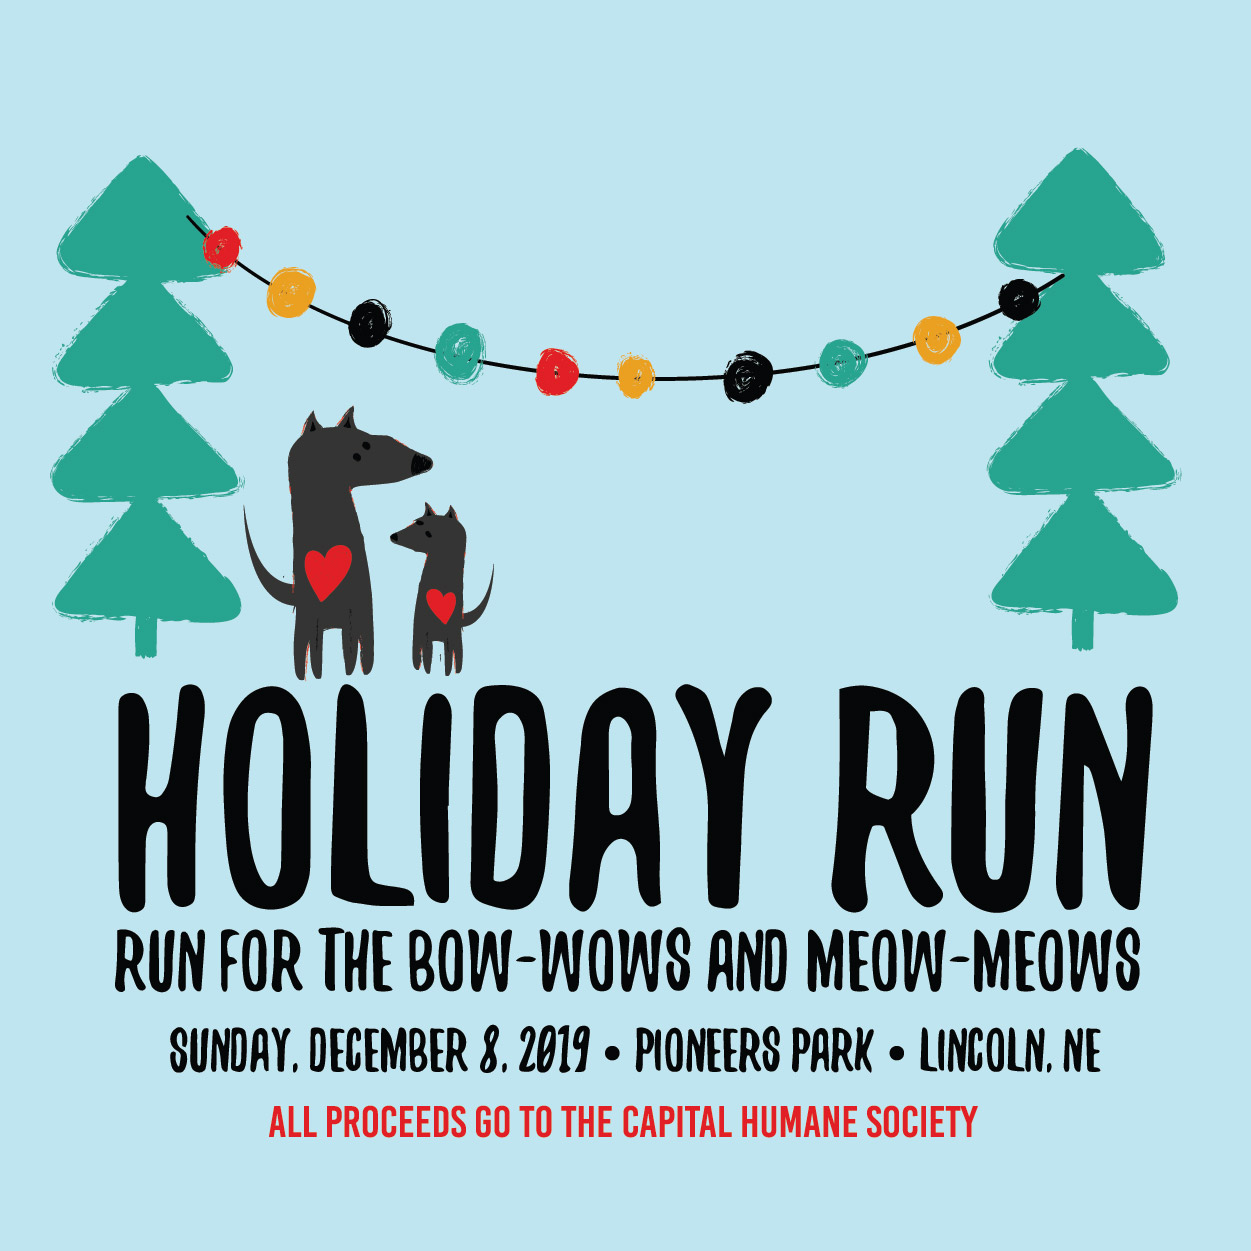 Annual Holiday Run